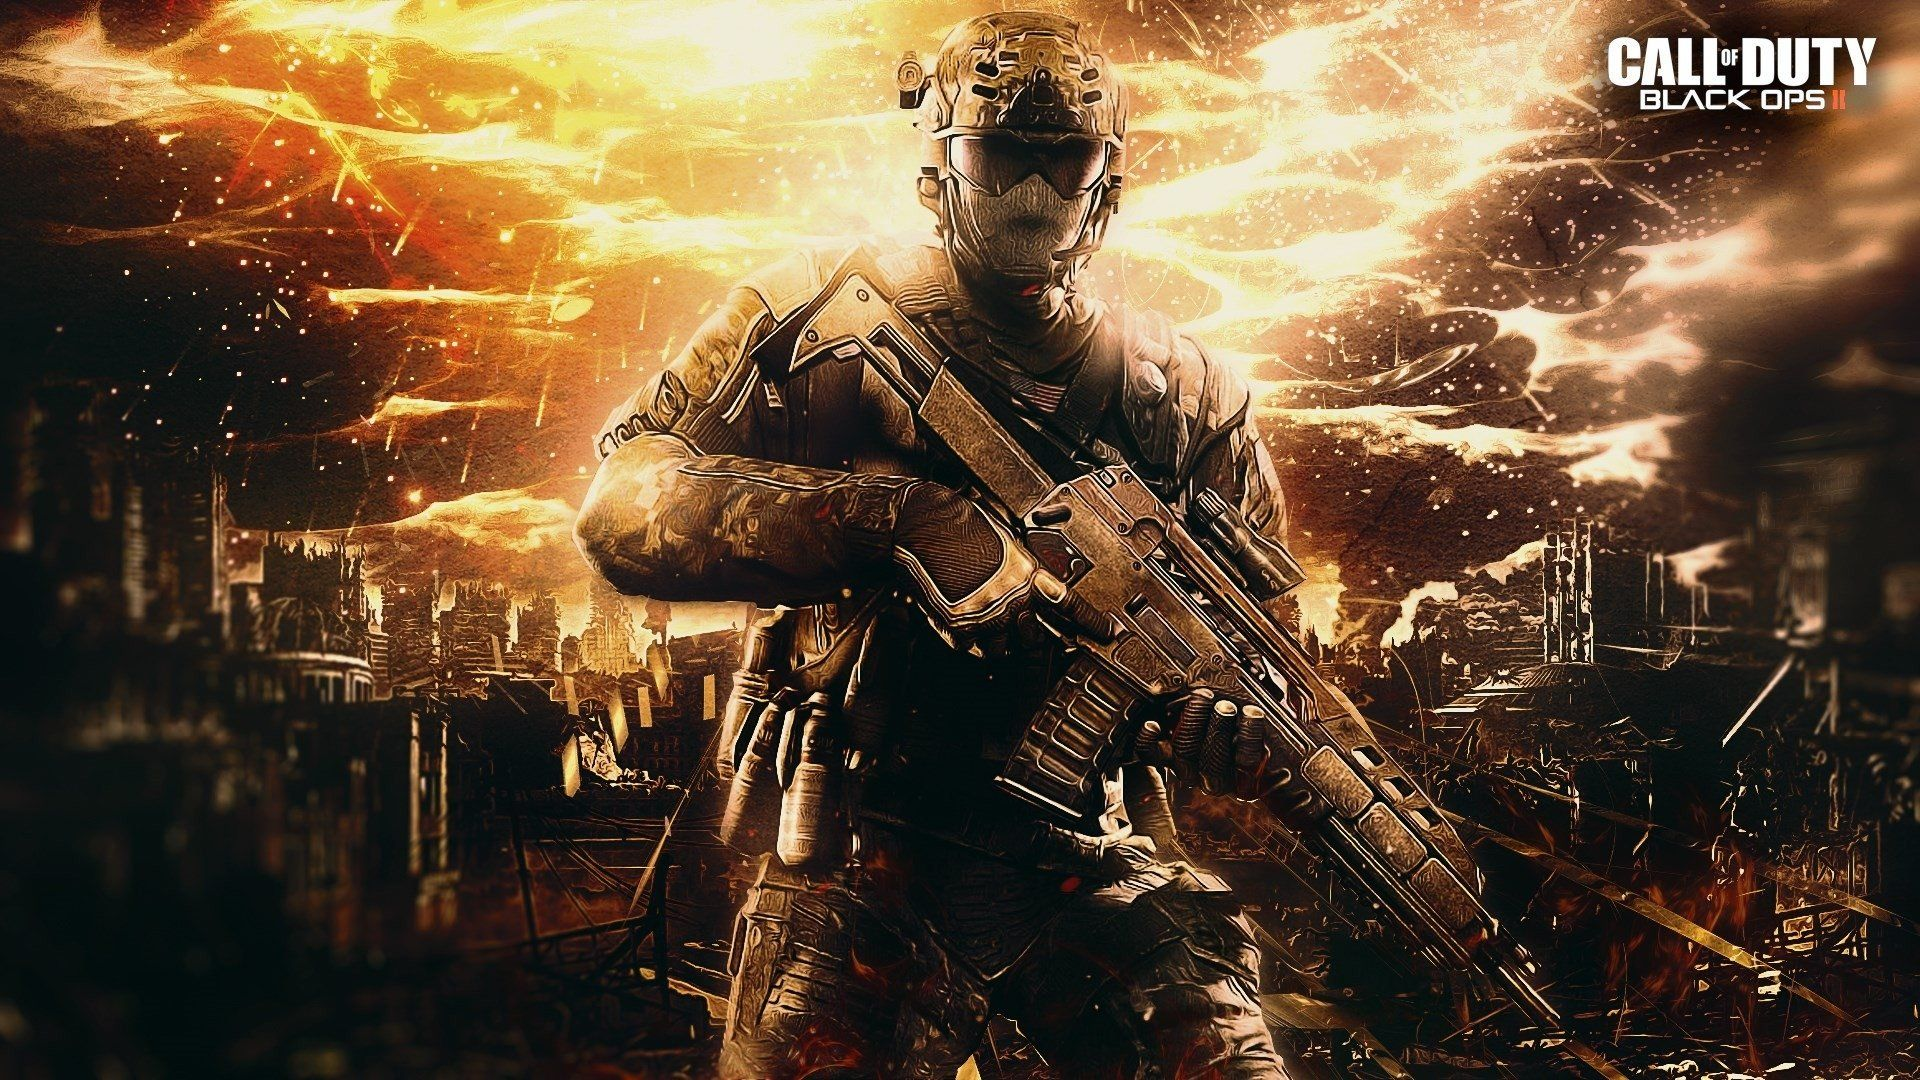 Call Of Duty Black Ops Wallpapers Top Free Call Of Duty Black